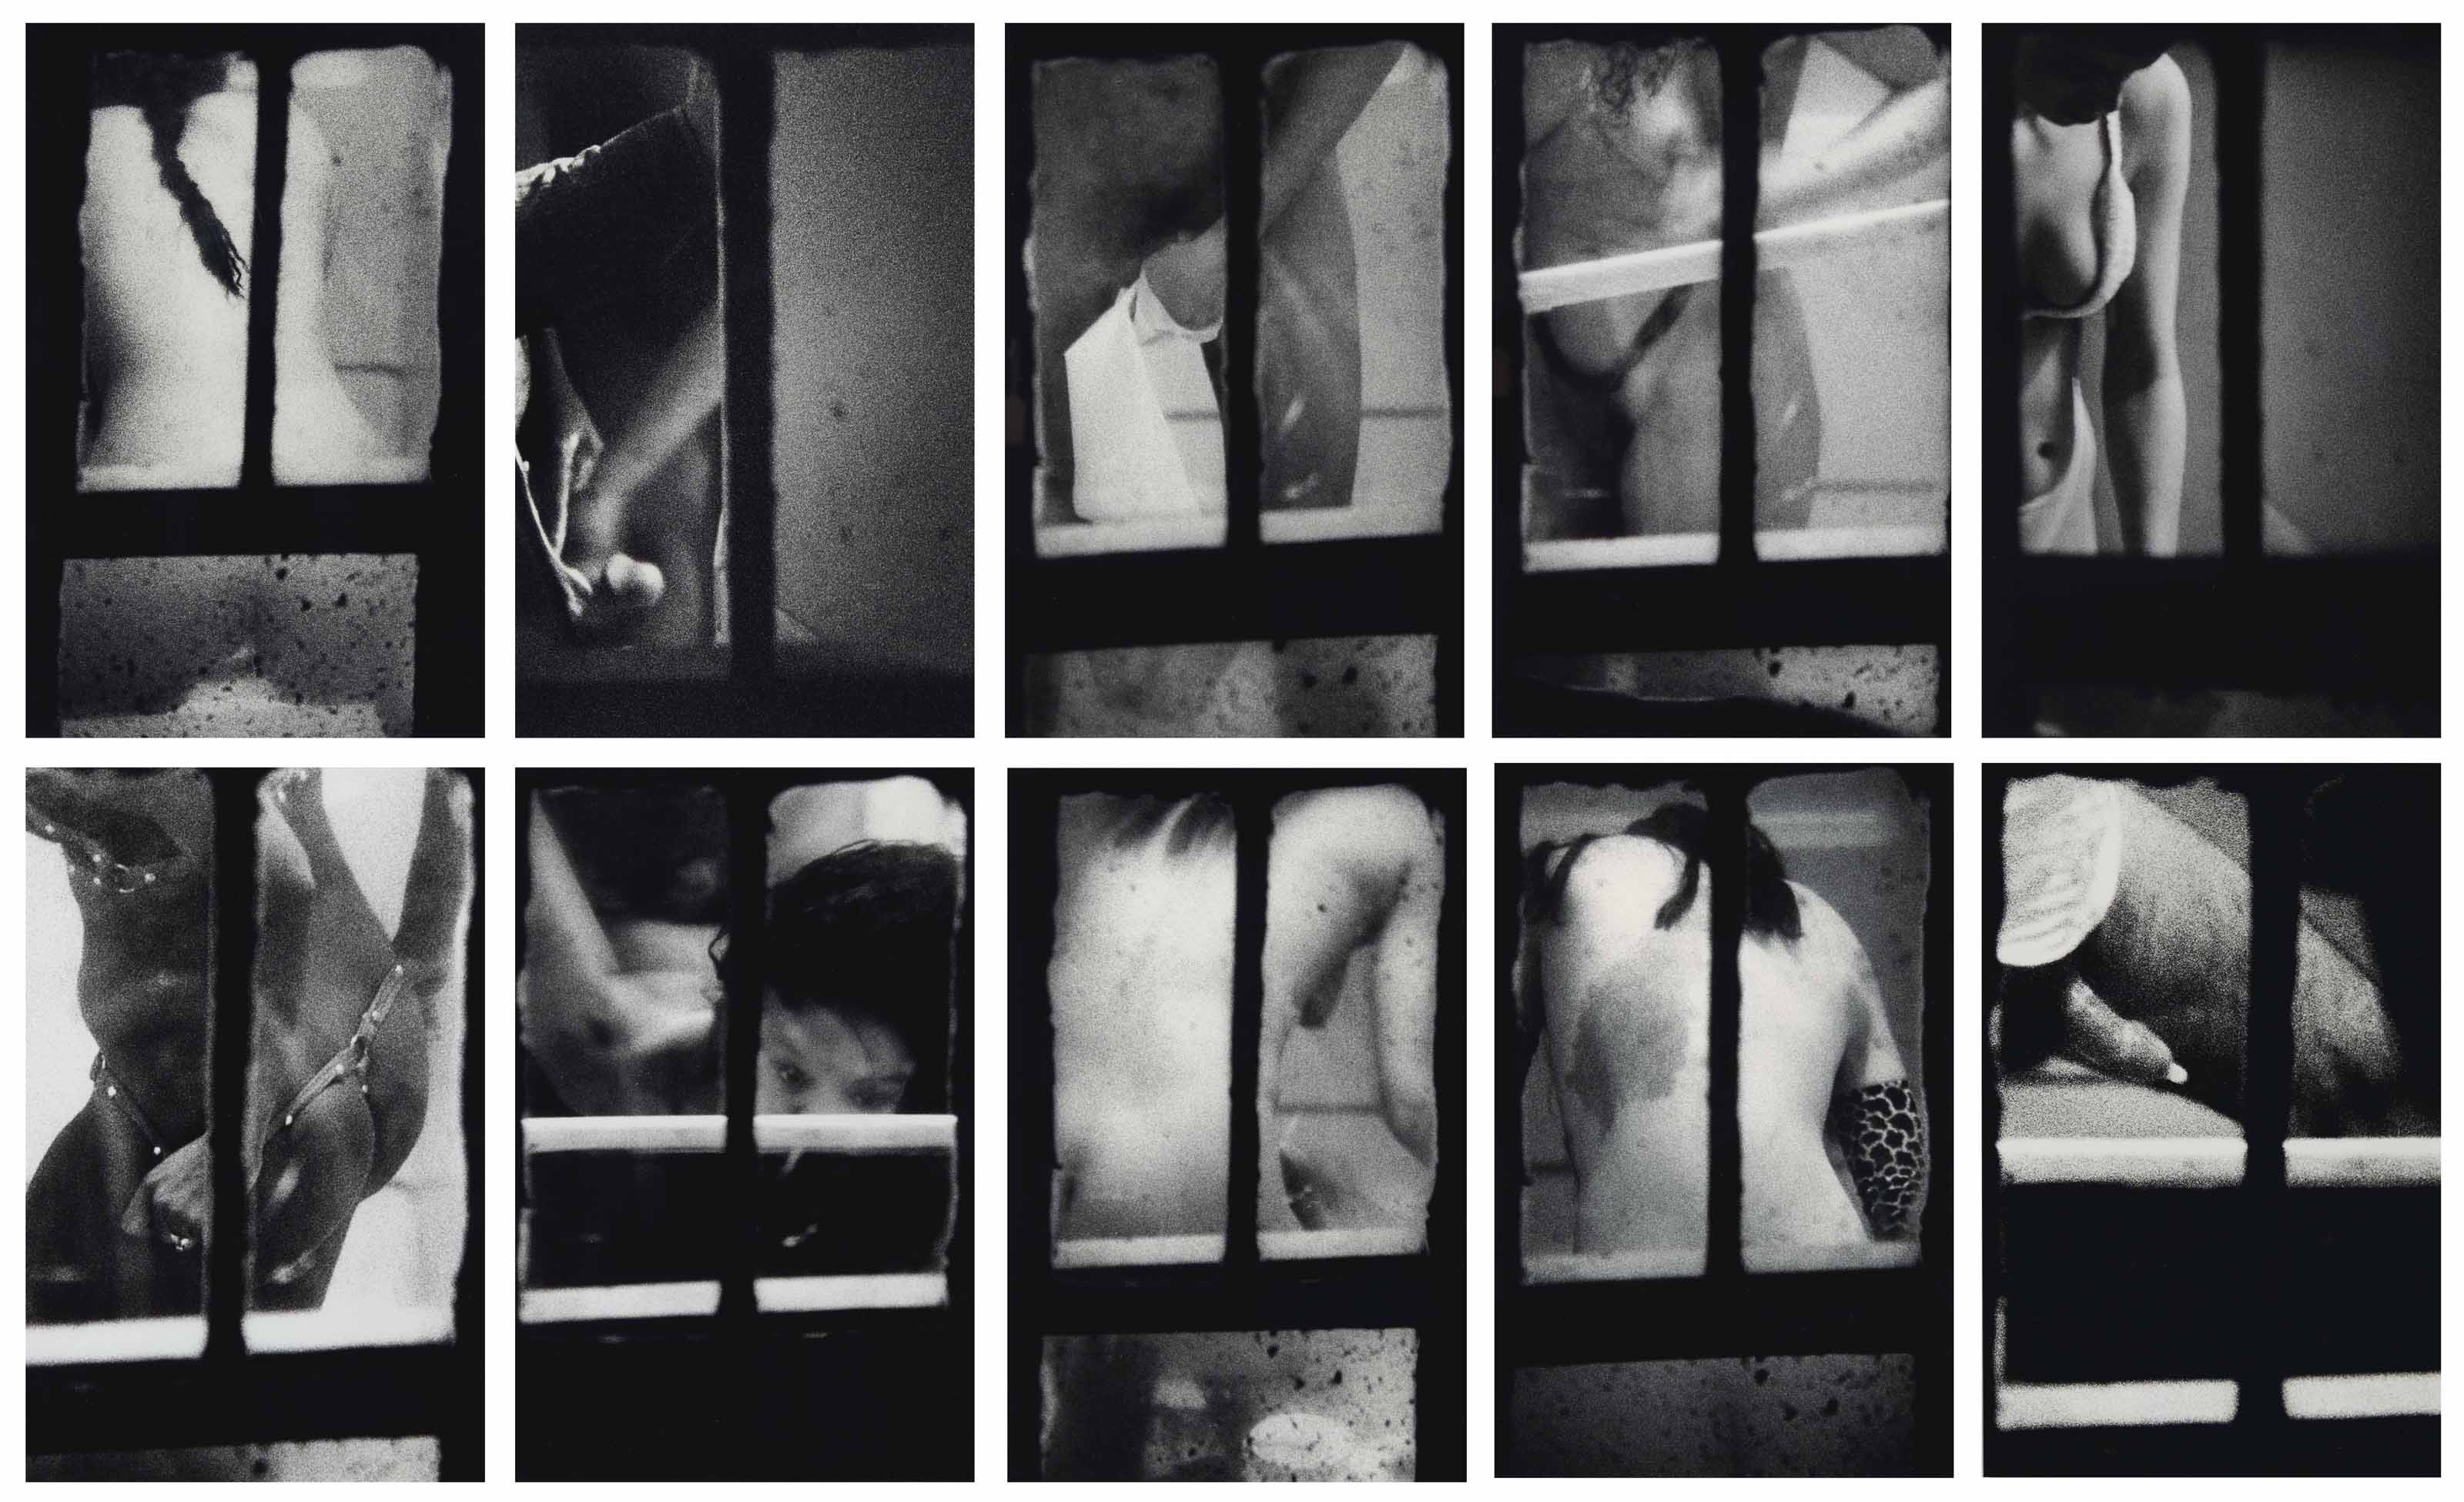 Untitled, de la série Dirty Window, 1994